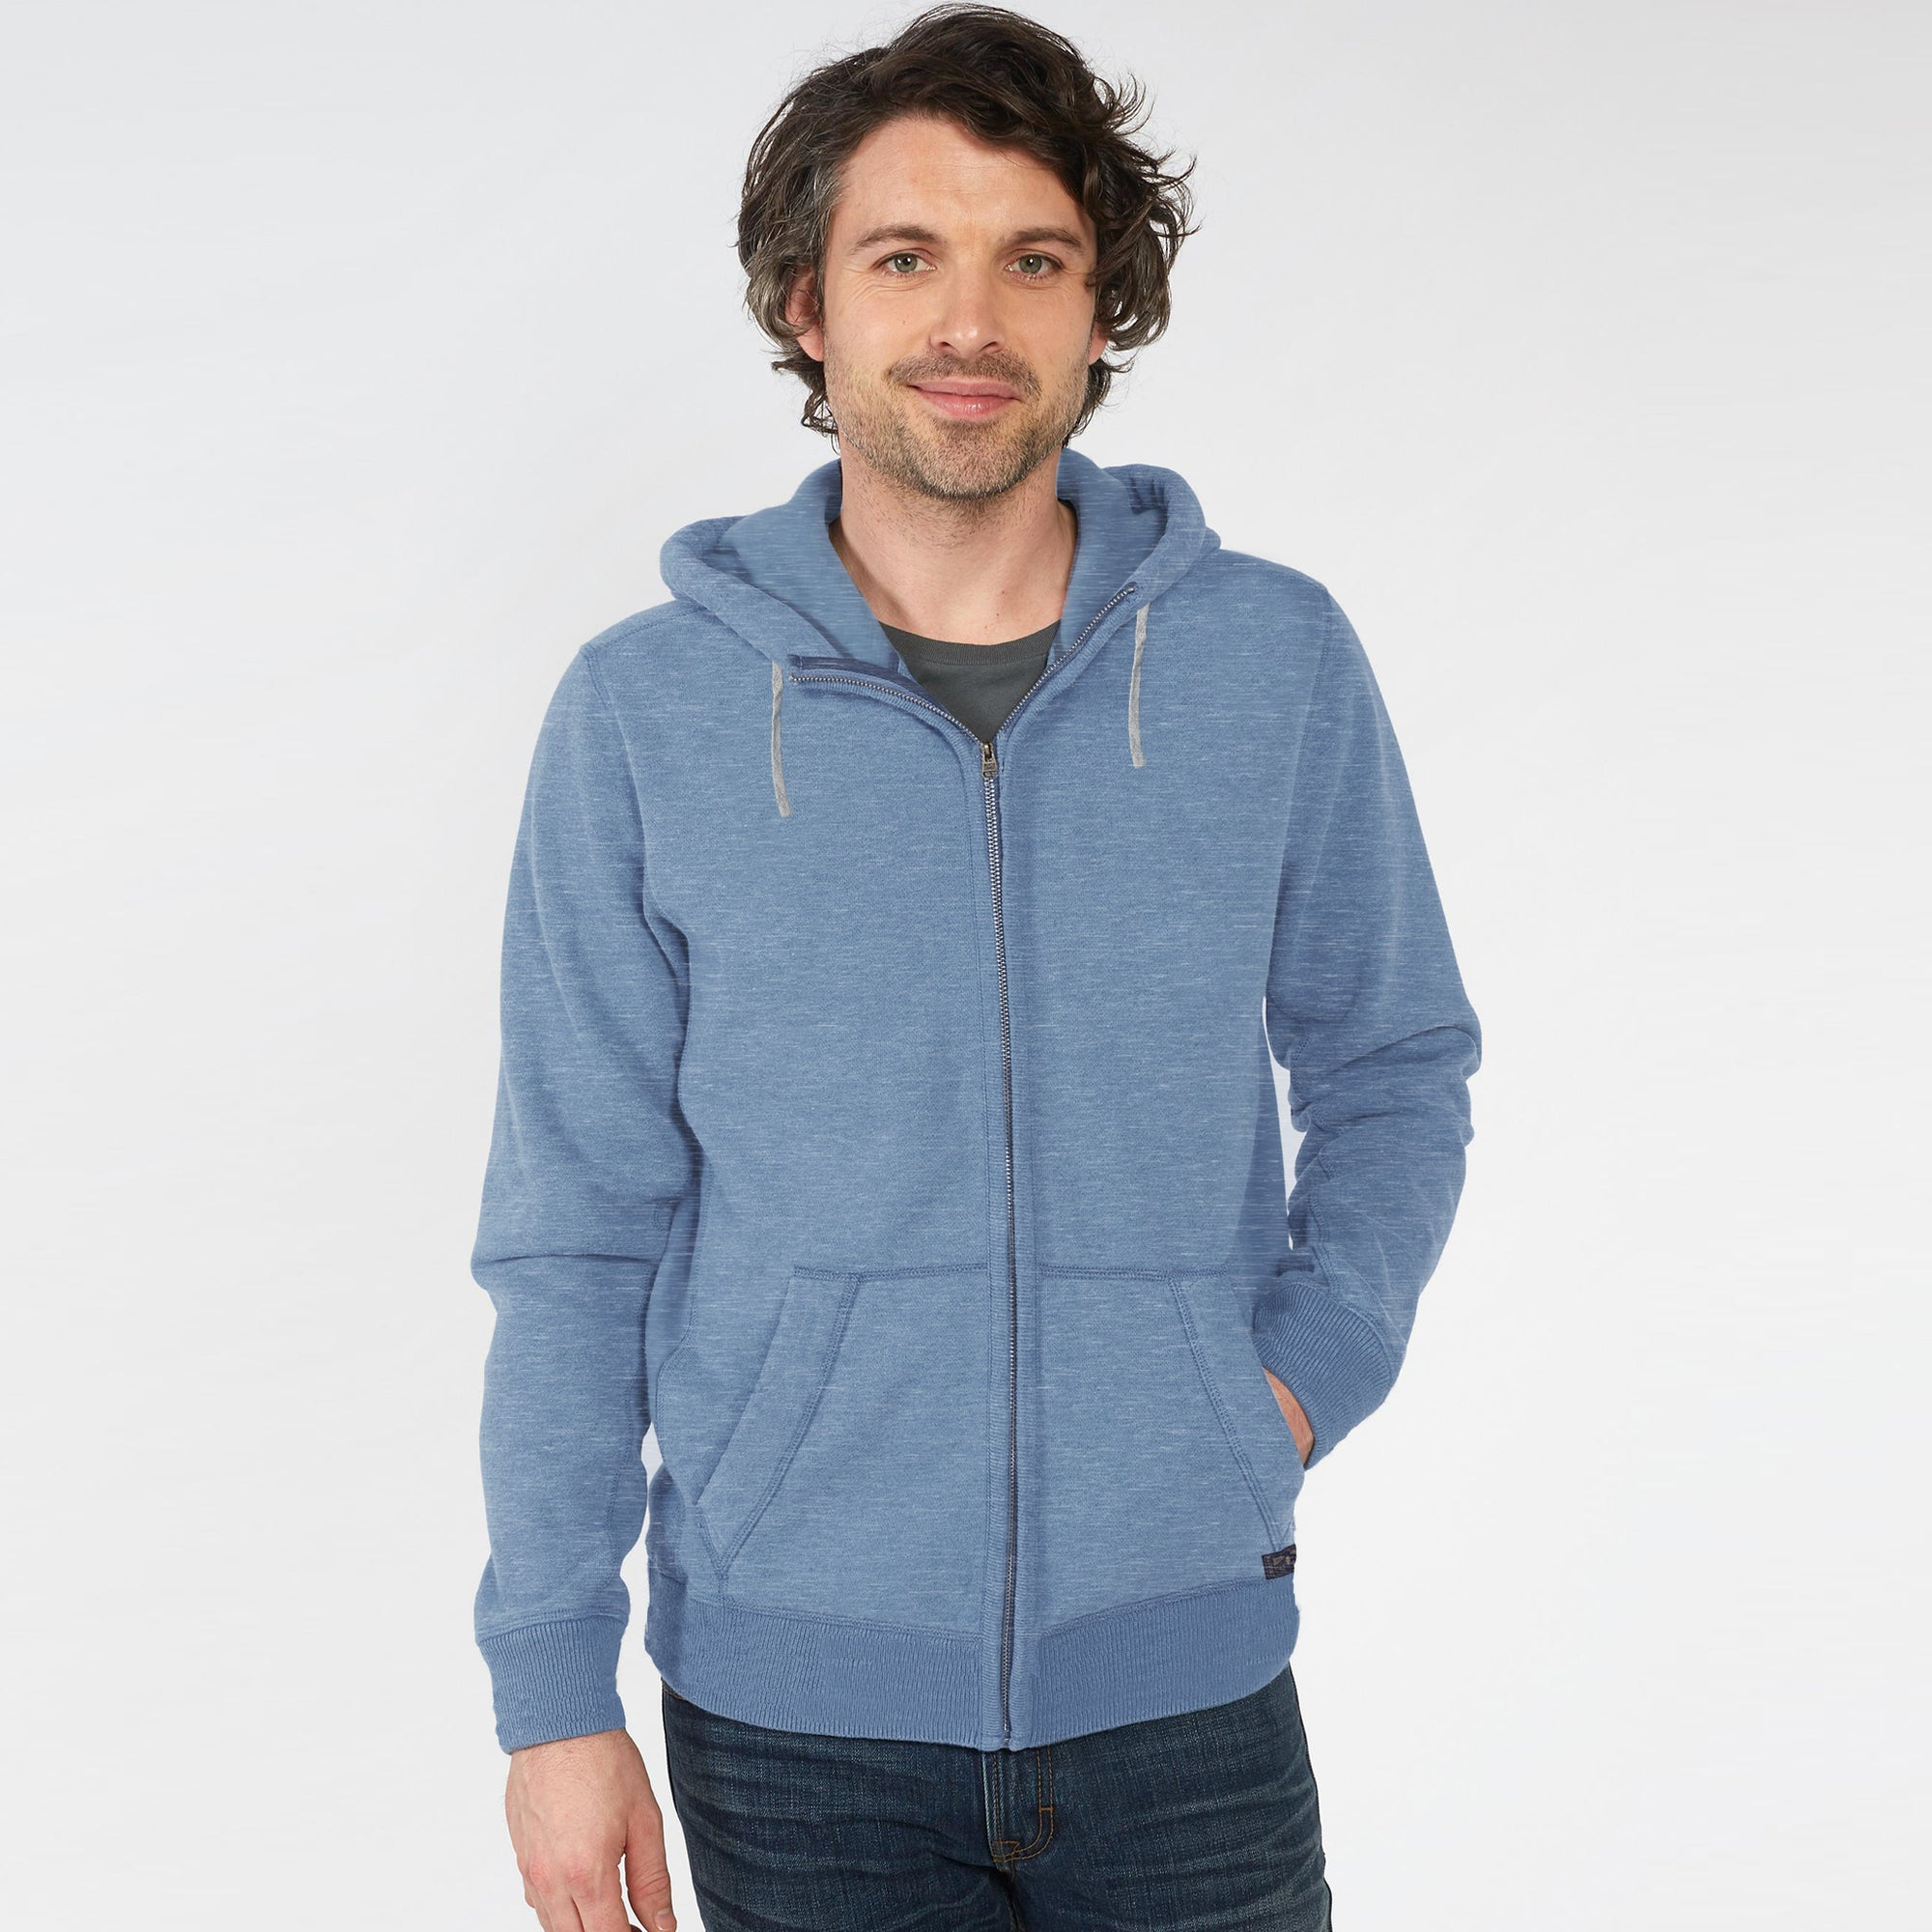 05b18460923d M S Zipper Terry Fleece Hoodie For Men-Light Sky Melange-BE4047 - BrandsEgo